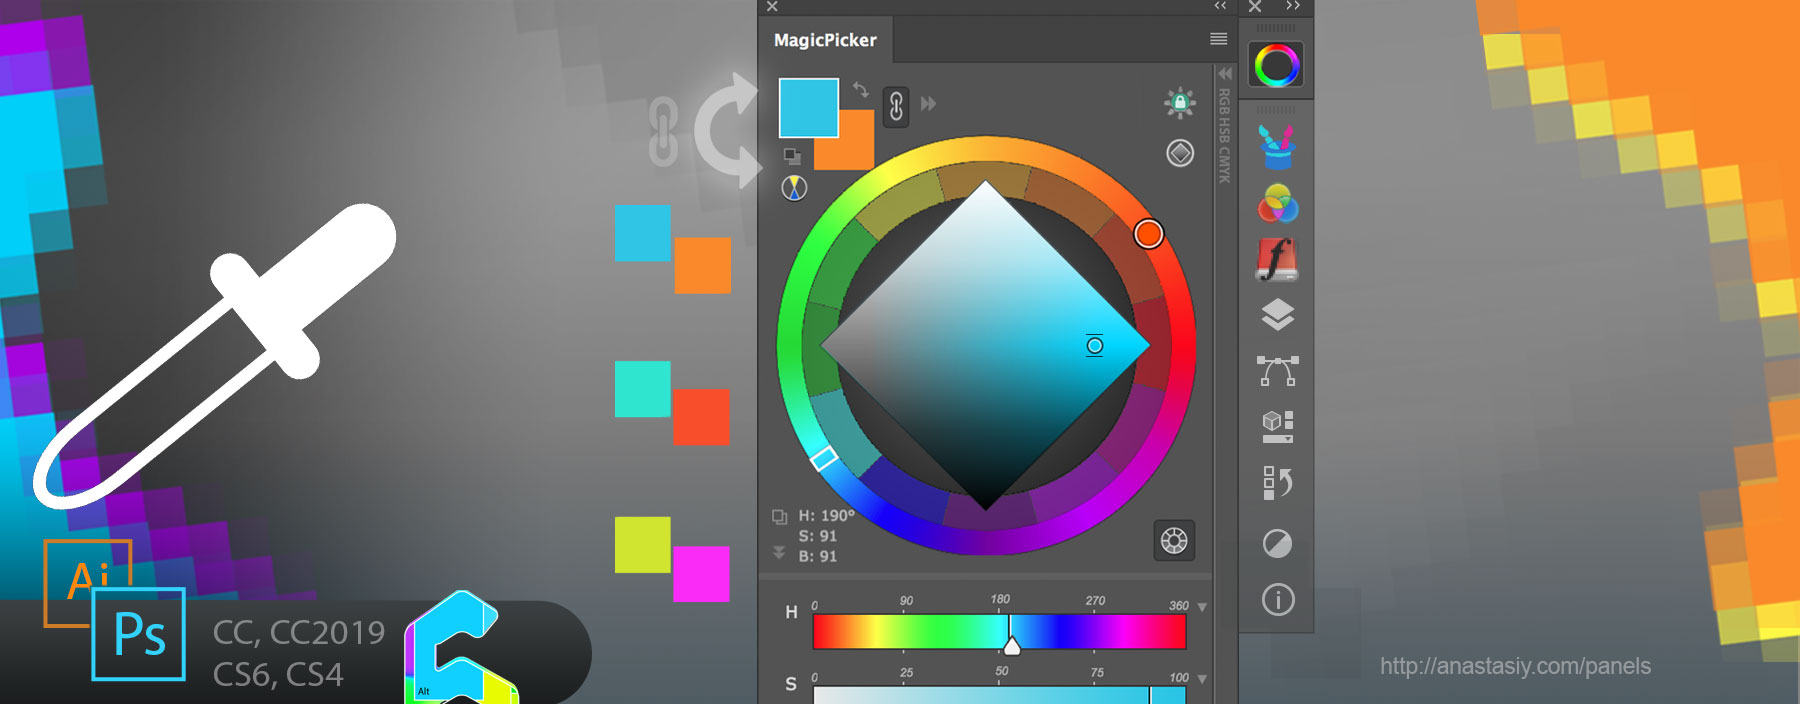 Keep linked background to foreground w/eyedropper in MagicPicker color wheel